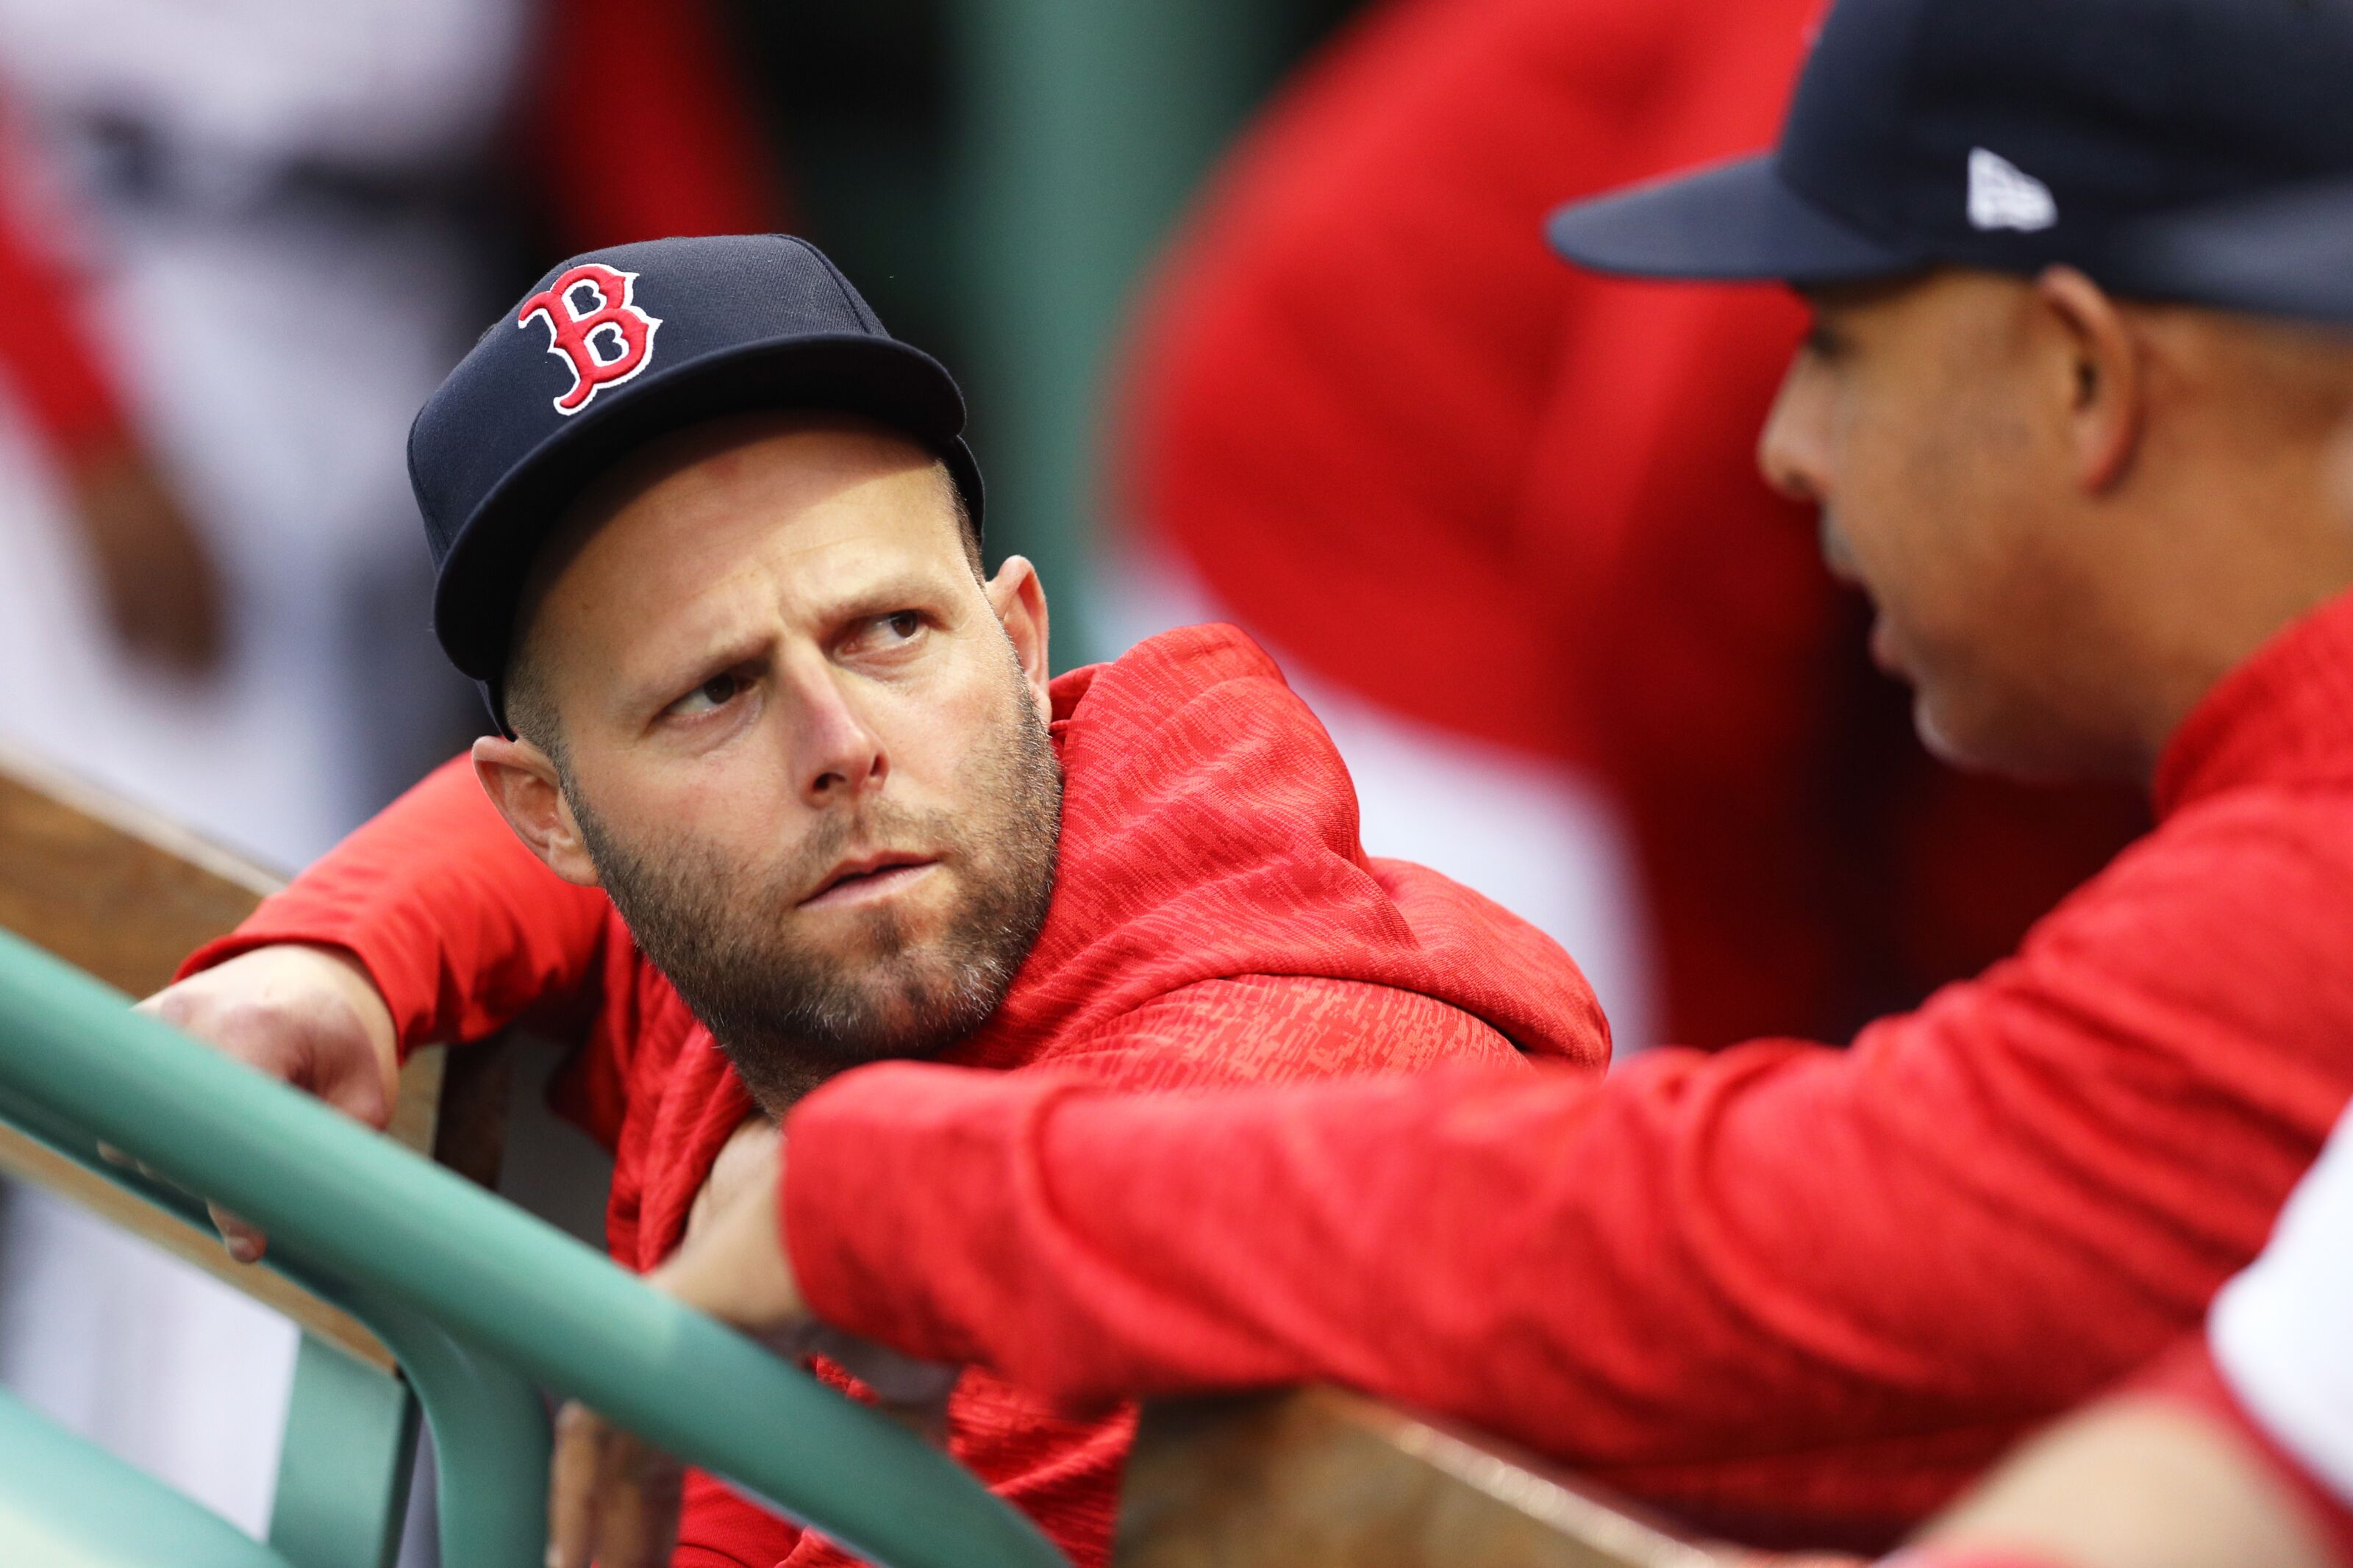 Red Sox: Most recent setback may force Dustin Pedroia to wave the white flag